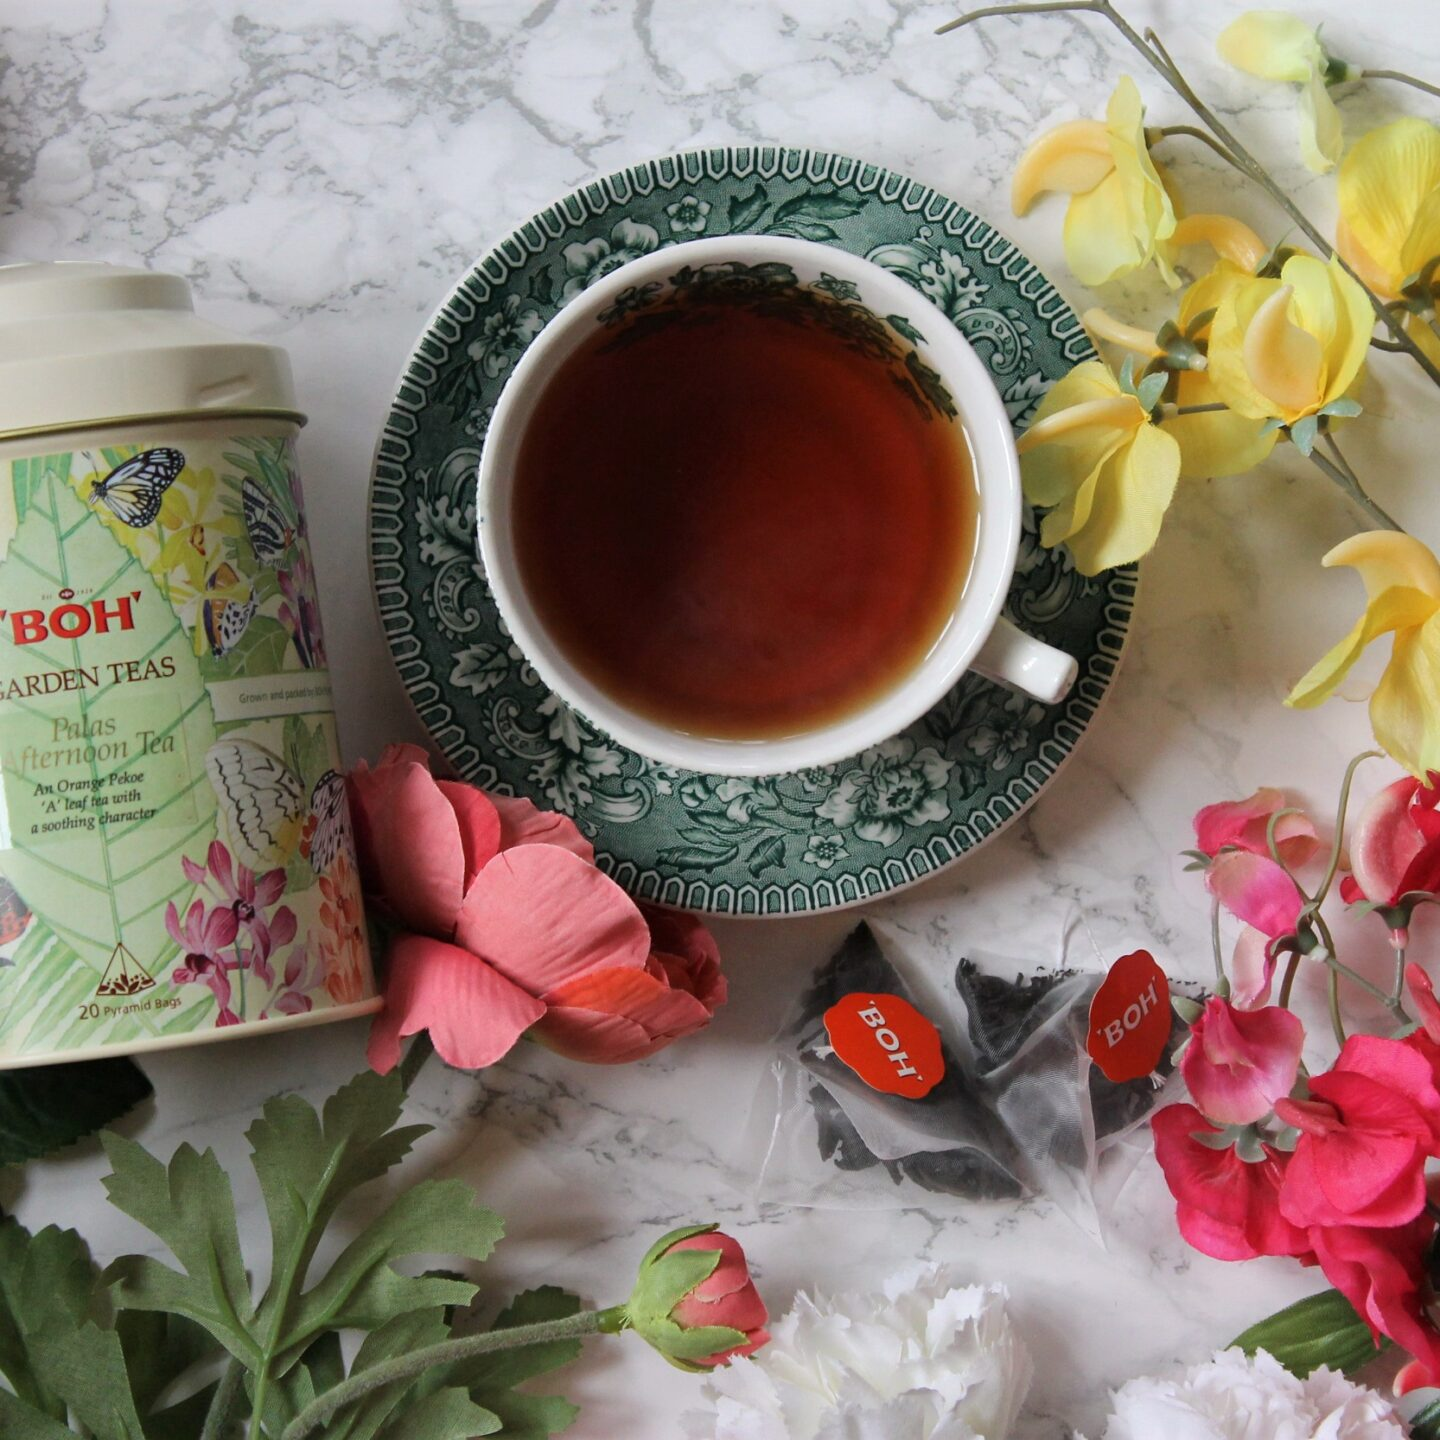 BOH Garden Teas – Palas Afternoon Tea Review